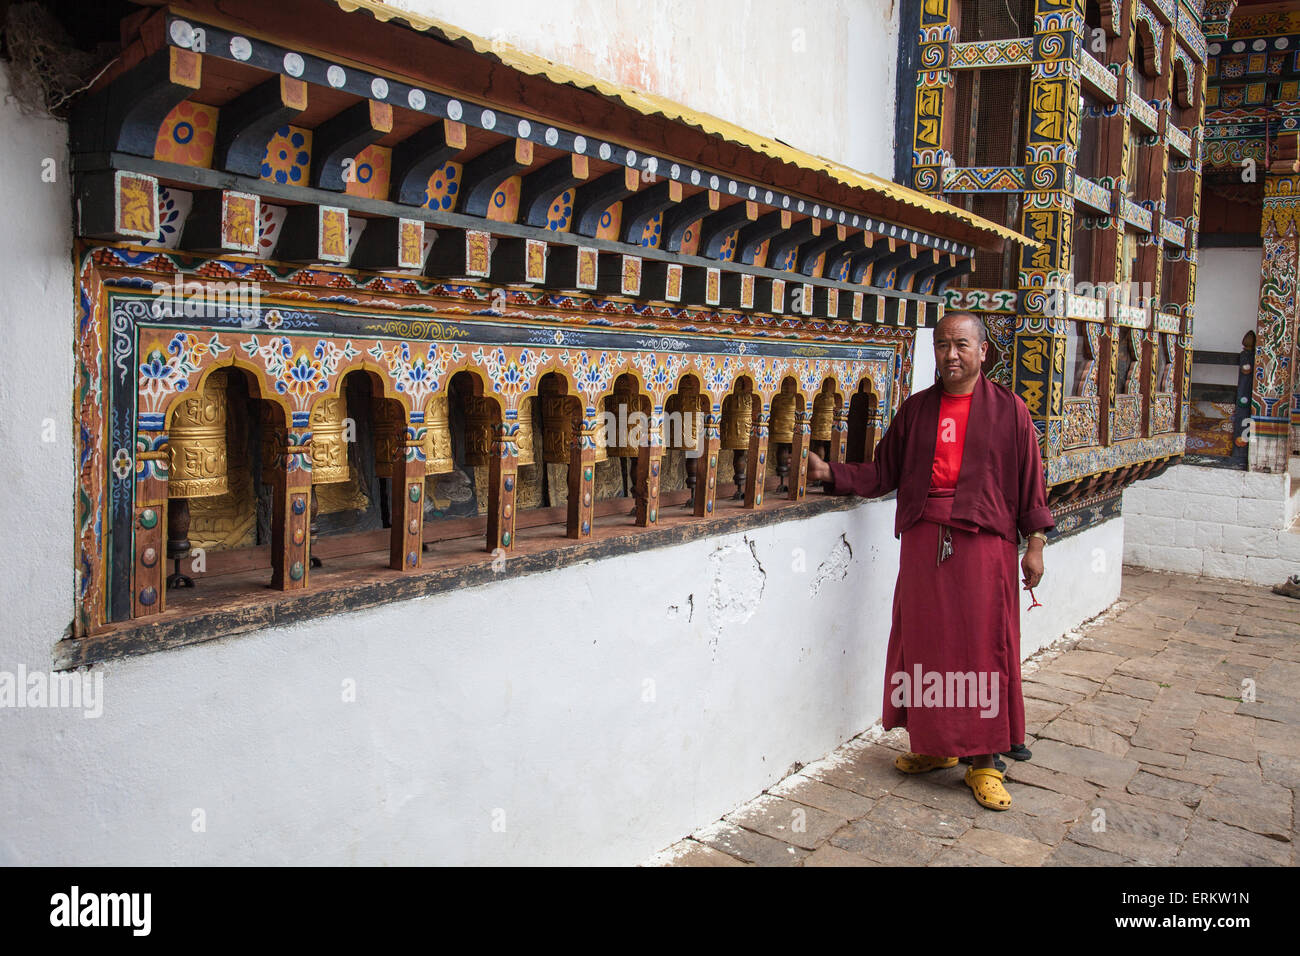 A monk rotates the roller-books of the Monastery of Punakha Dzong which are used to pray, Paro, Bhutan, Asia - Stock Image